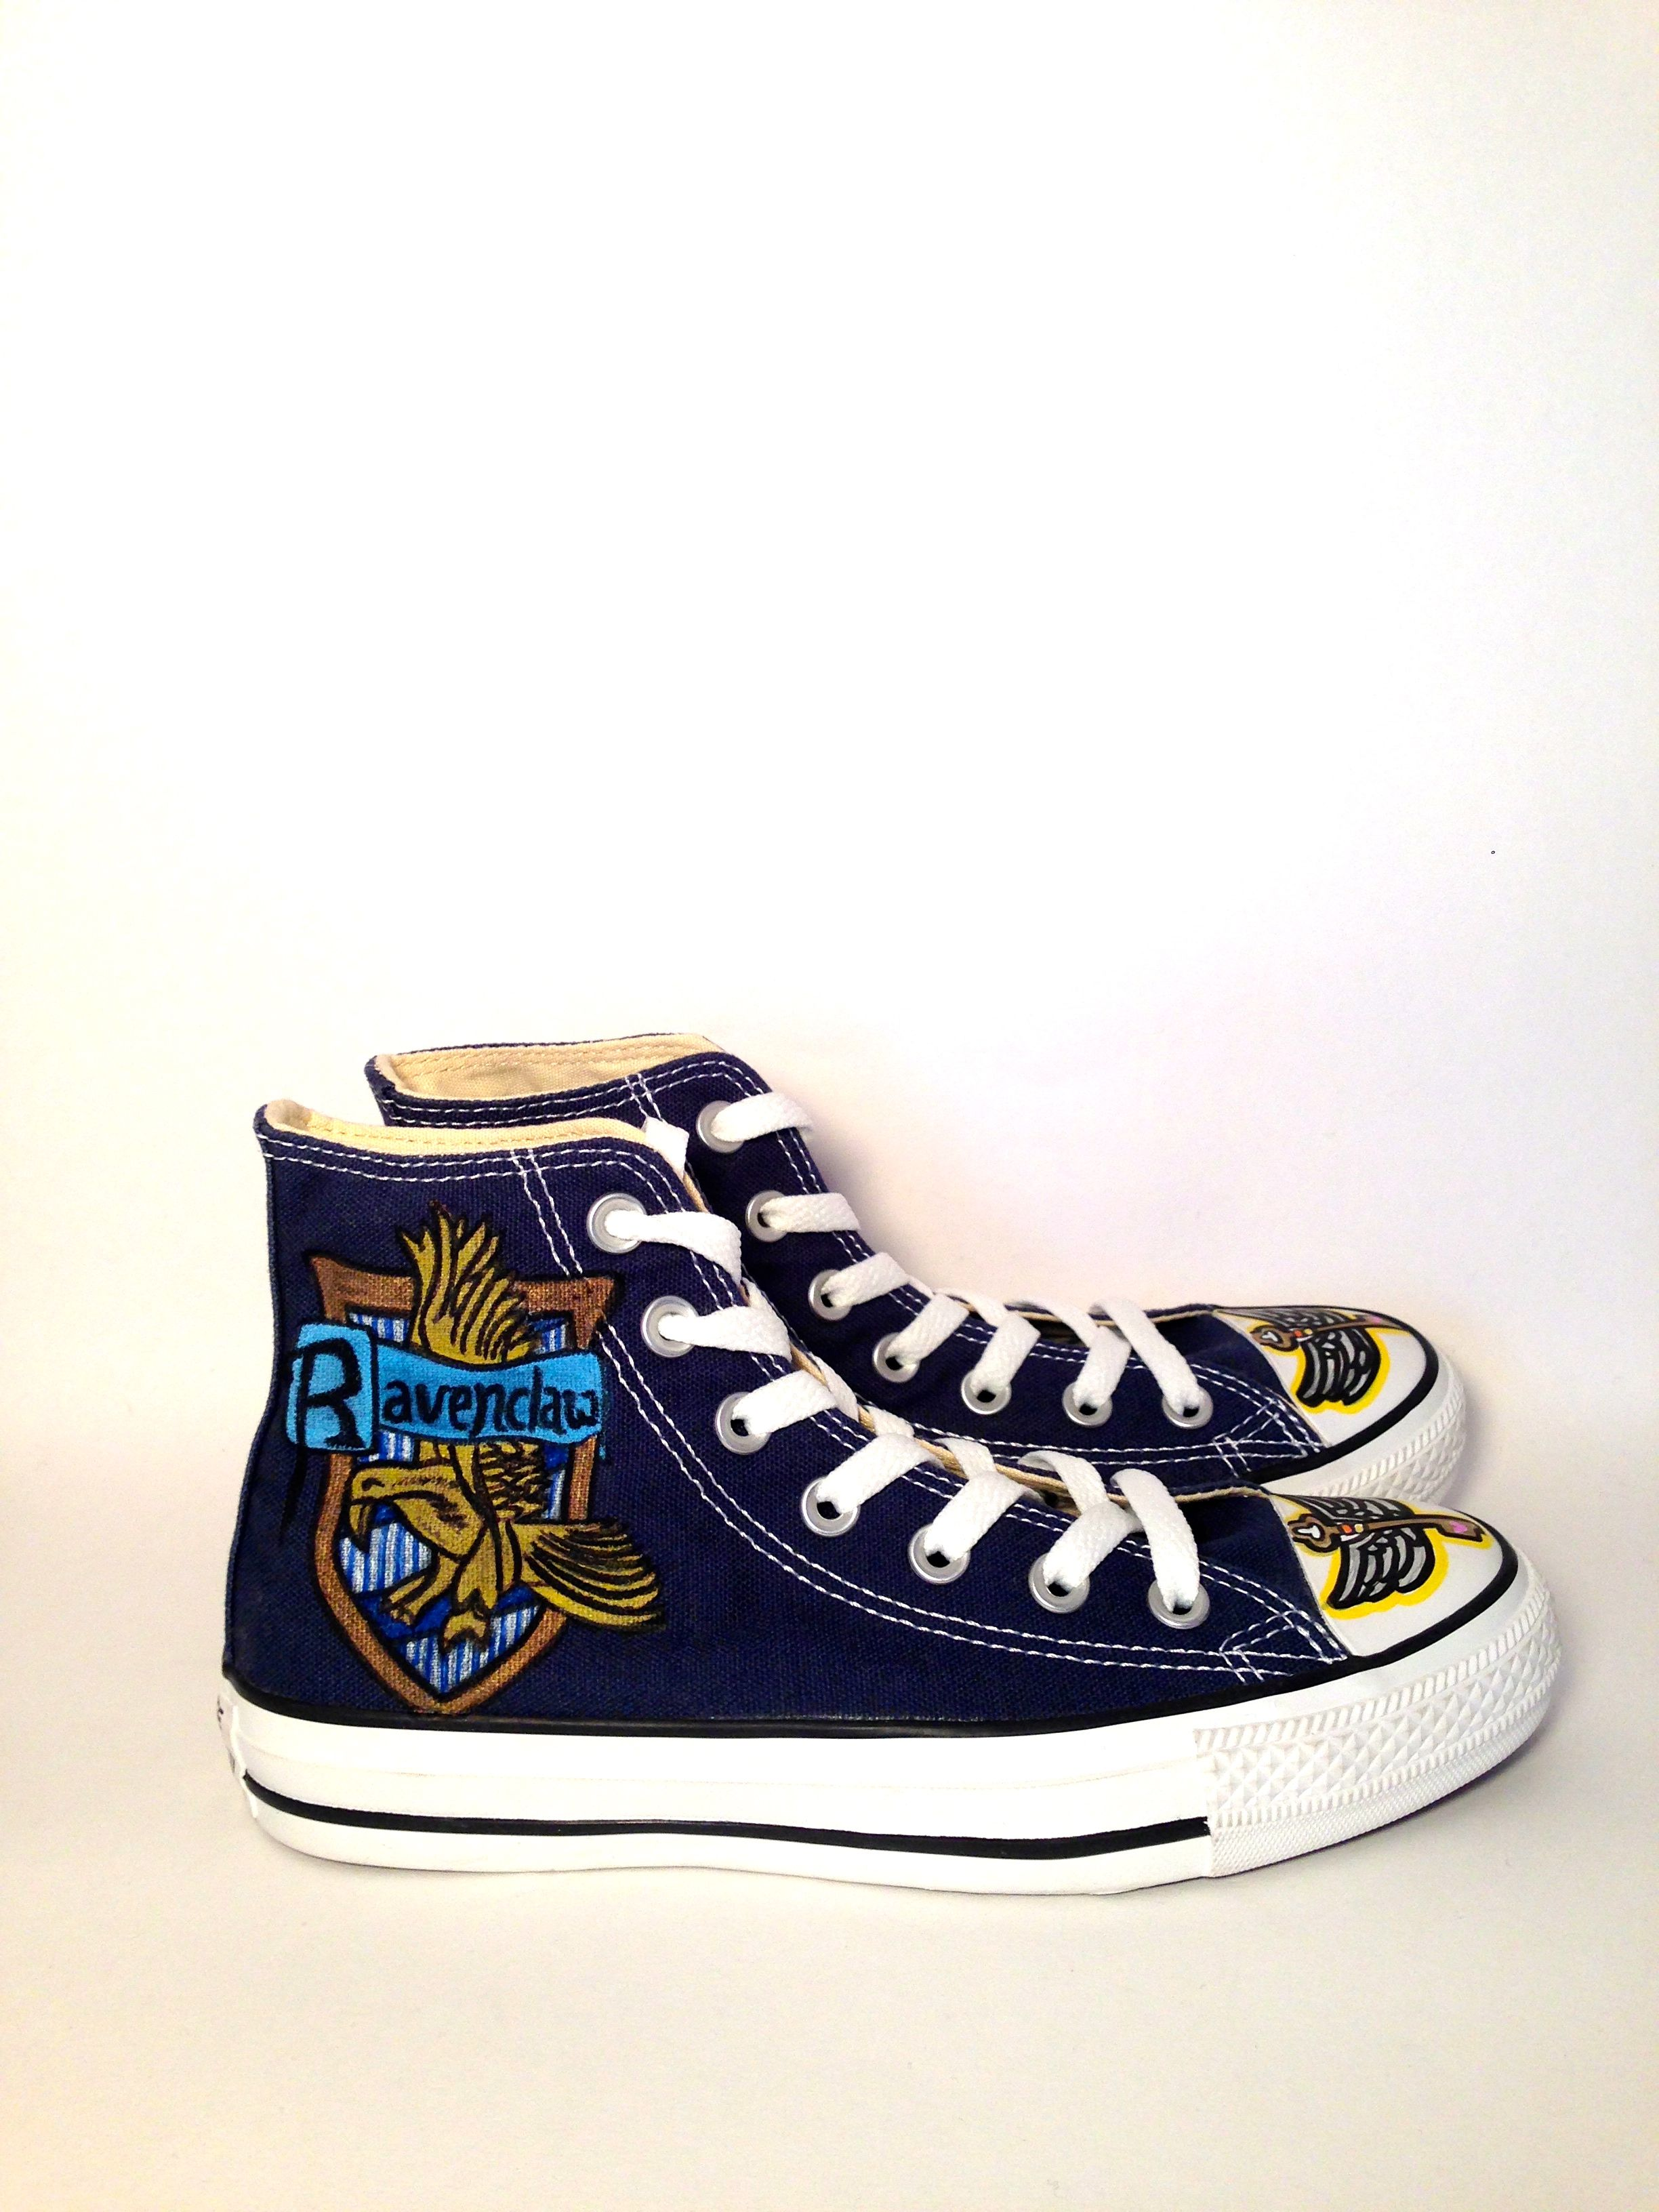 chaussure harry potter converse